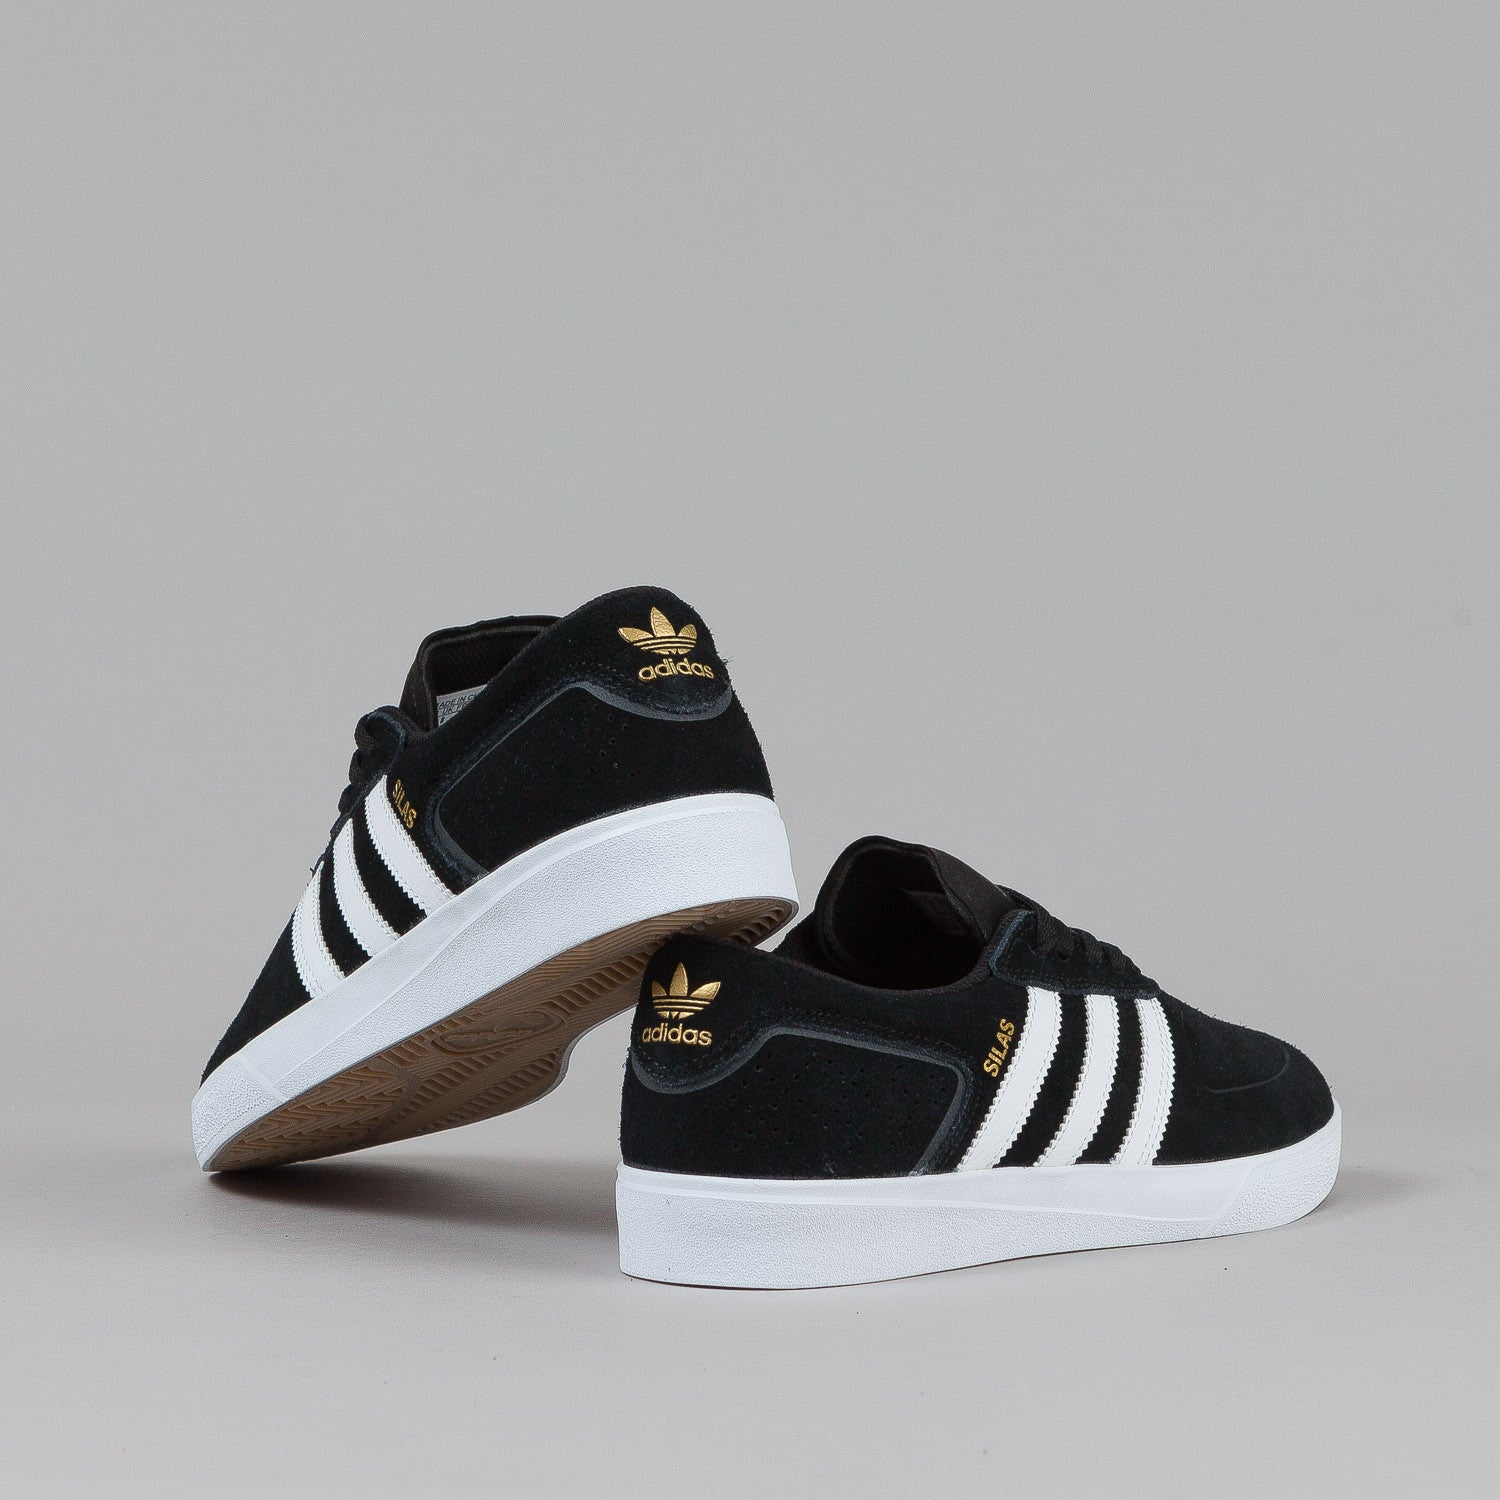 buy popular 19e57 29dfe wholesale adidas silas pro skate shoes 3288b d1455